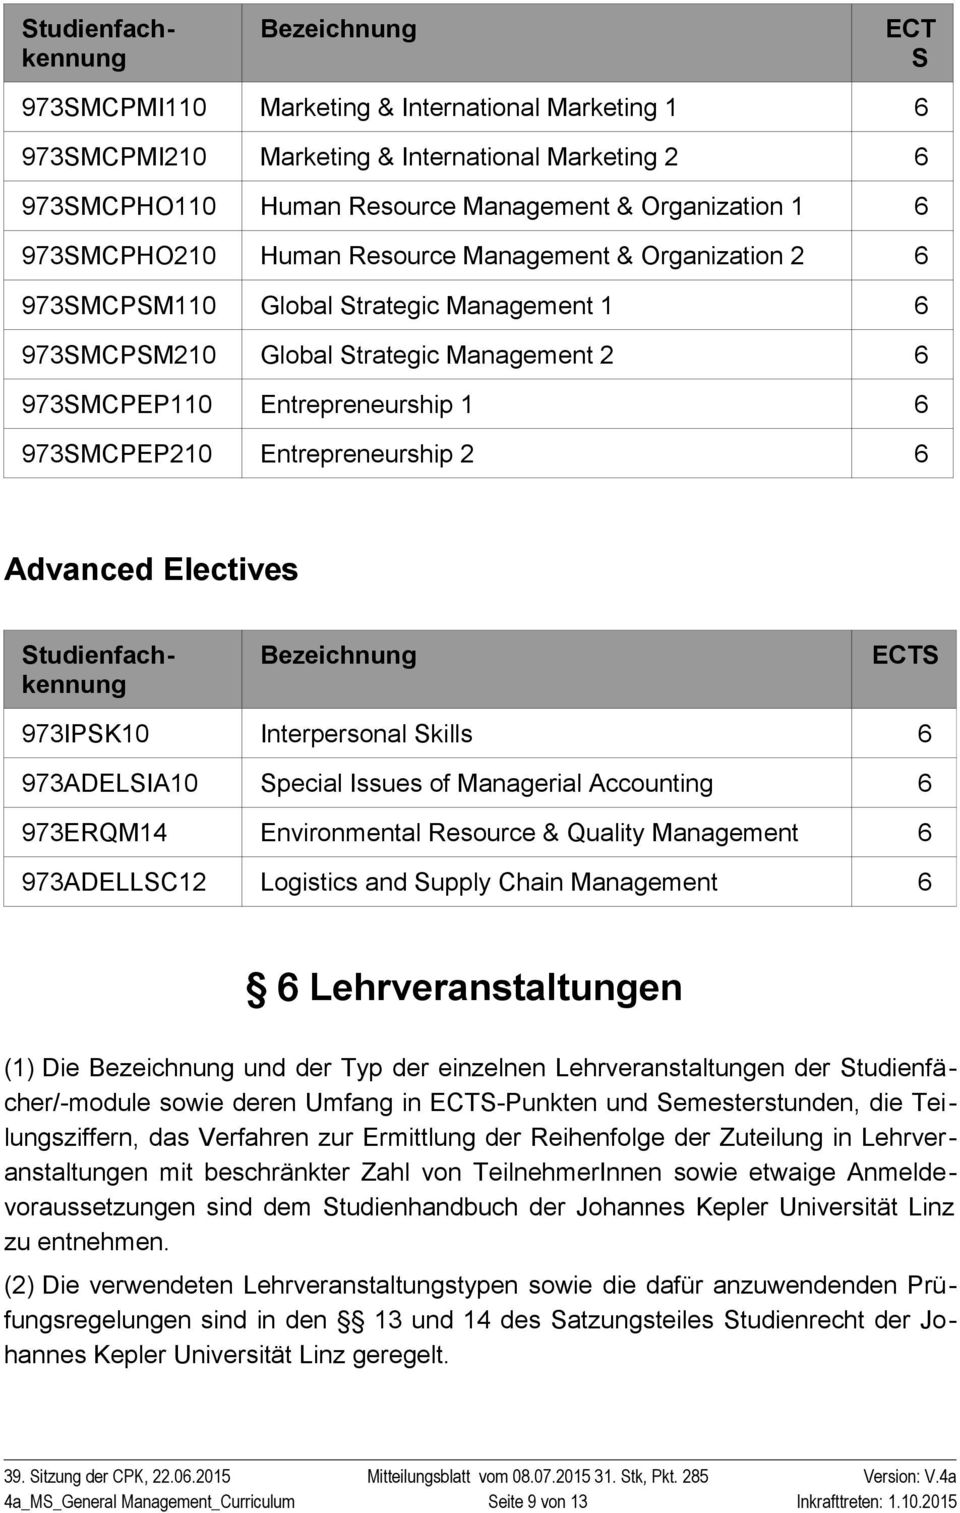 2 6 Advanced Electives Studienfachkennung Studienfachkennung Bezeichnung ECTS 973IPSK10 Interpersonal Skills 6 973ADELSIA10 Special Issues of Managerial Accounting 6 973ERQM1 Environmental Resource &